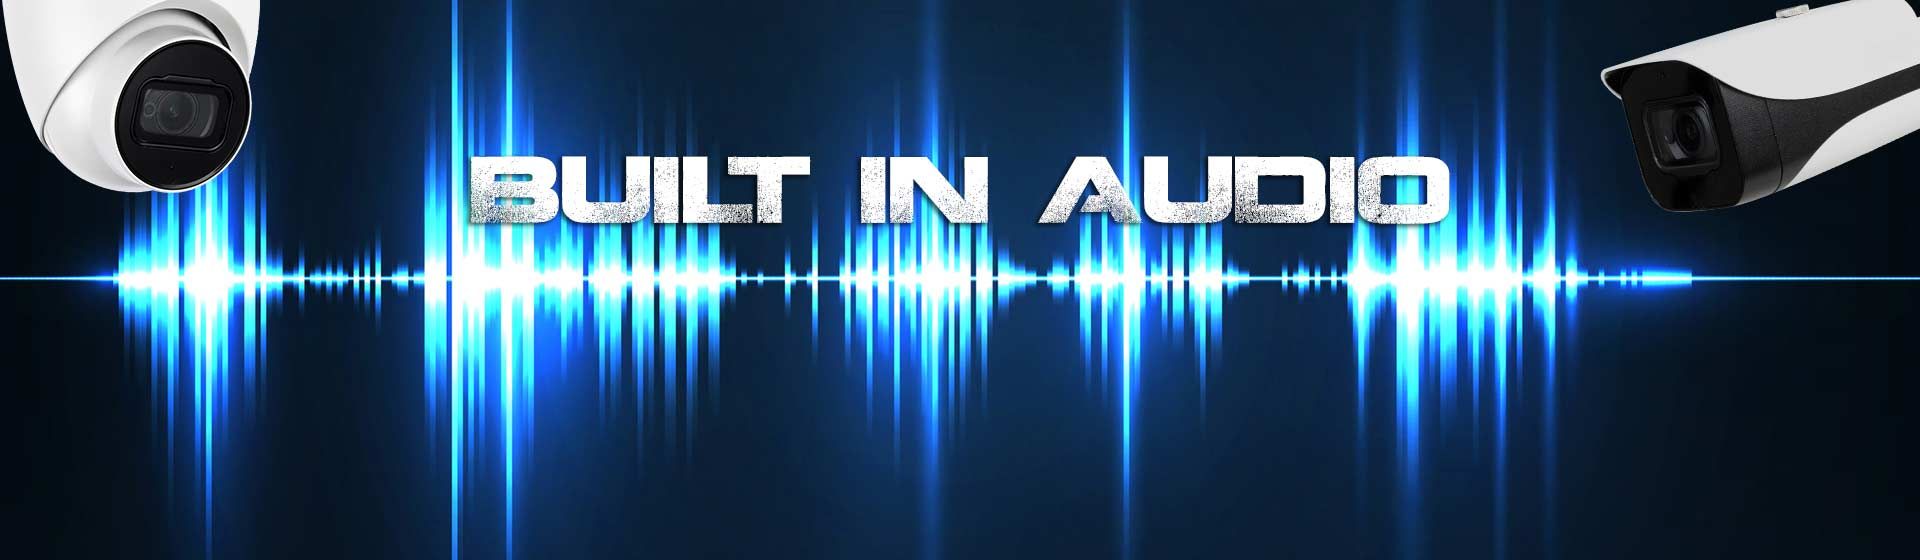 Security and Surveillance Solutions - Built in Audio